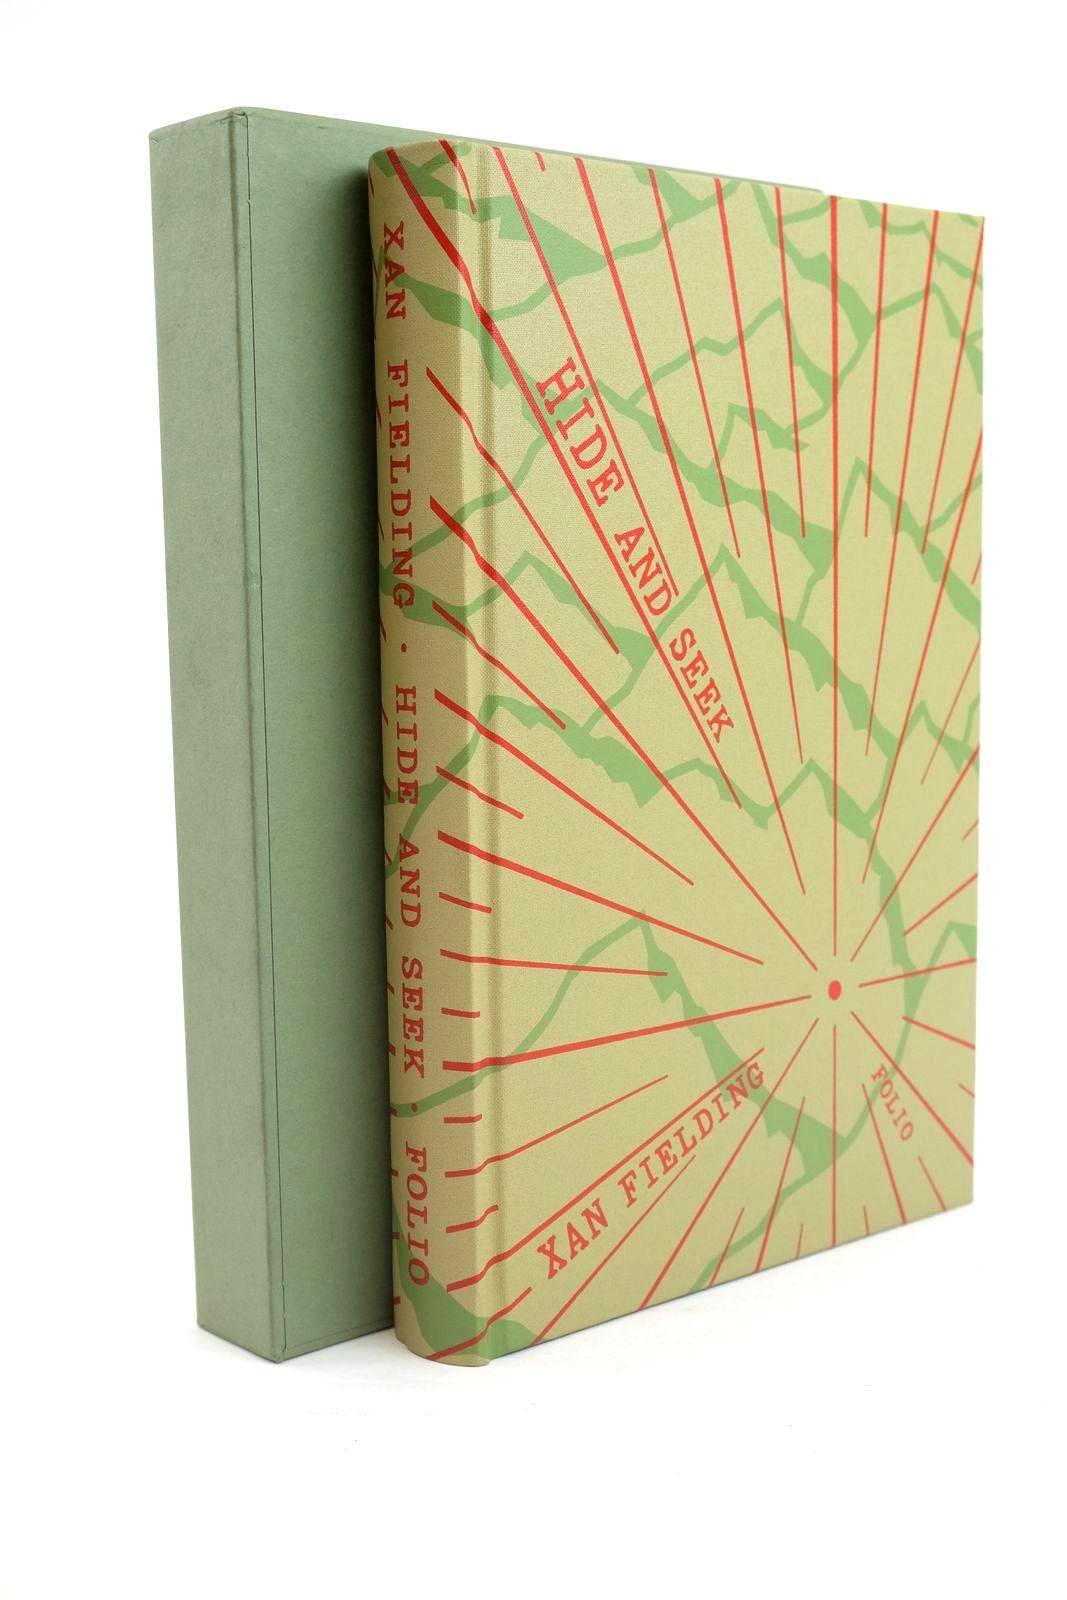 Photo of HIDE AND SEEK - THE STORY OF A WARTIME AGENT written by Fielding, Xan published by Folio Society (STOCK CODE: 1320133)  for sale by Stella & Rose's Books